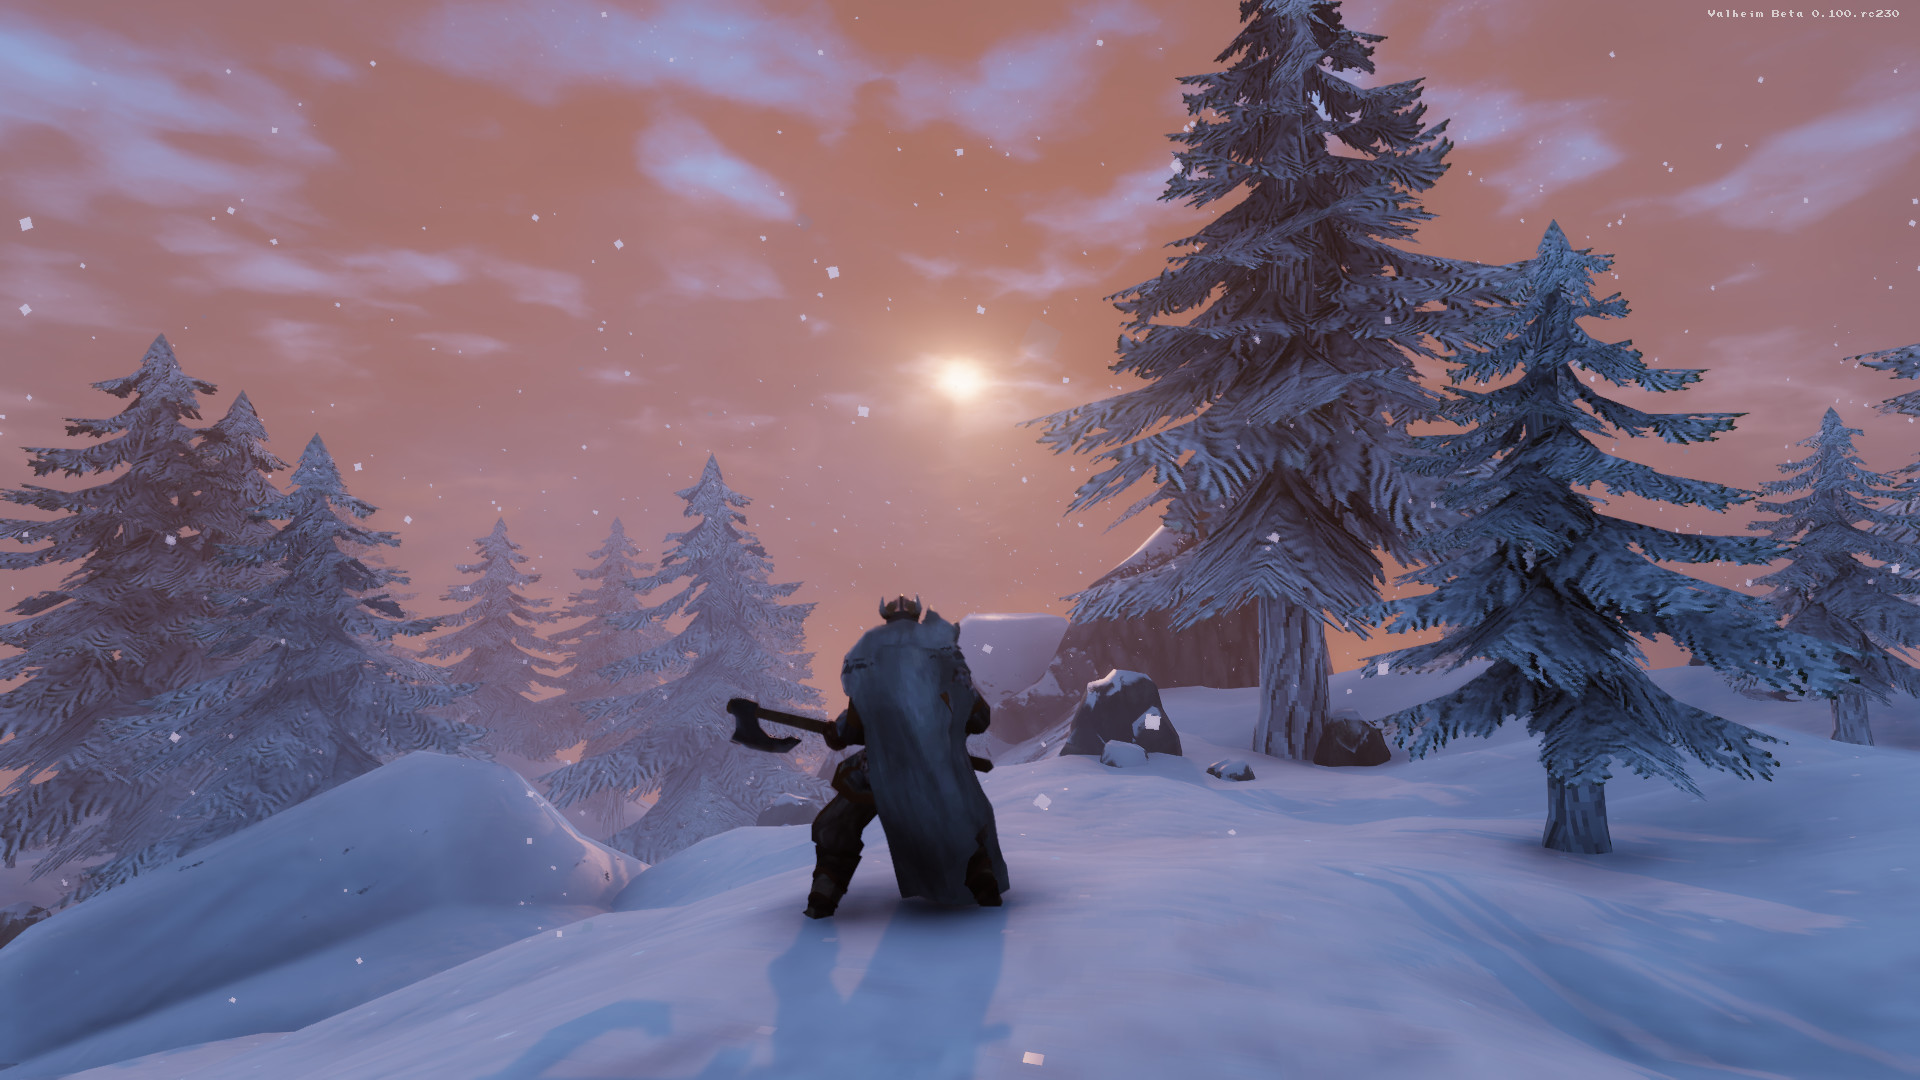 Valheim is one of the top 50 games running on Linux on Steam